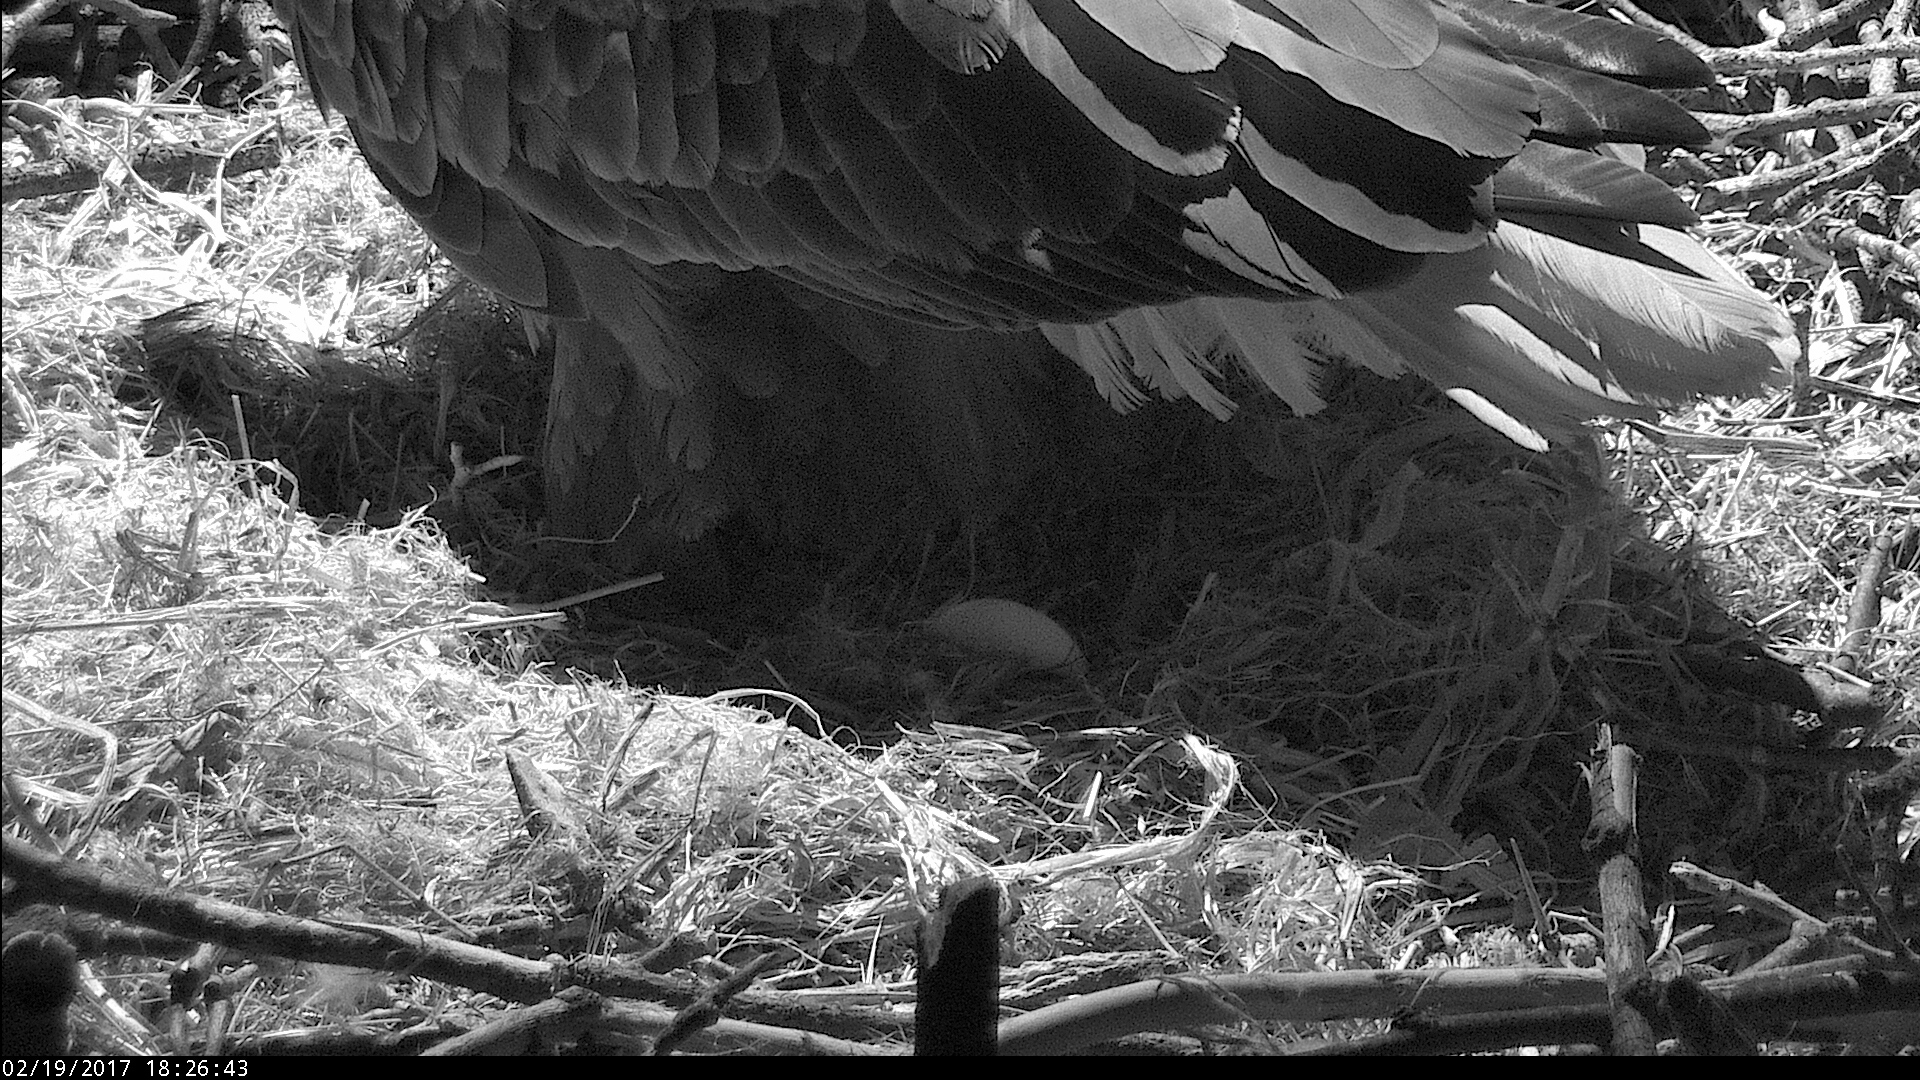 Bald Eagle live stream shows first egg of the season